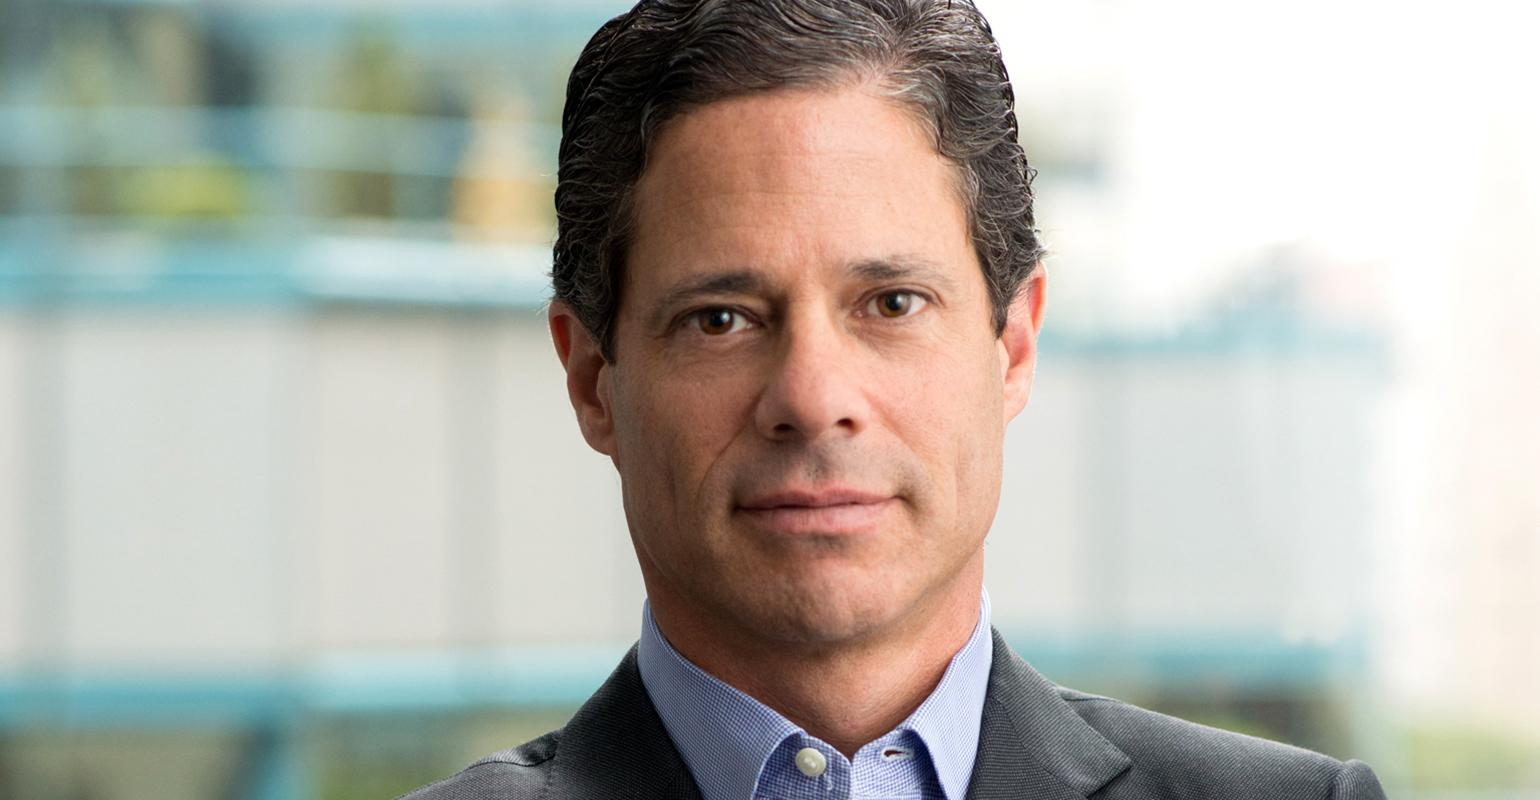 iCapital Network CEO Lawrence Calcano